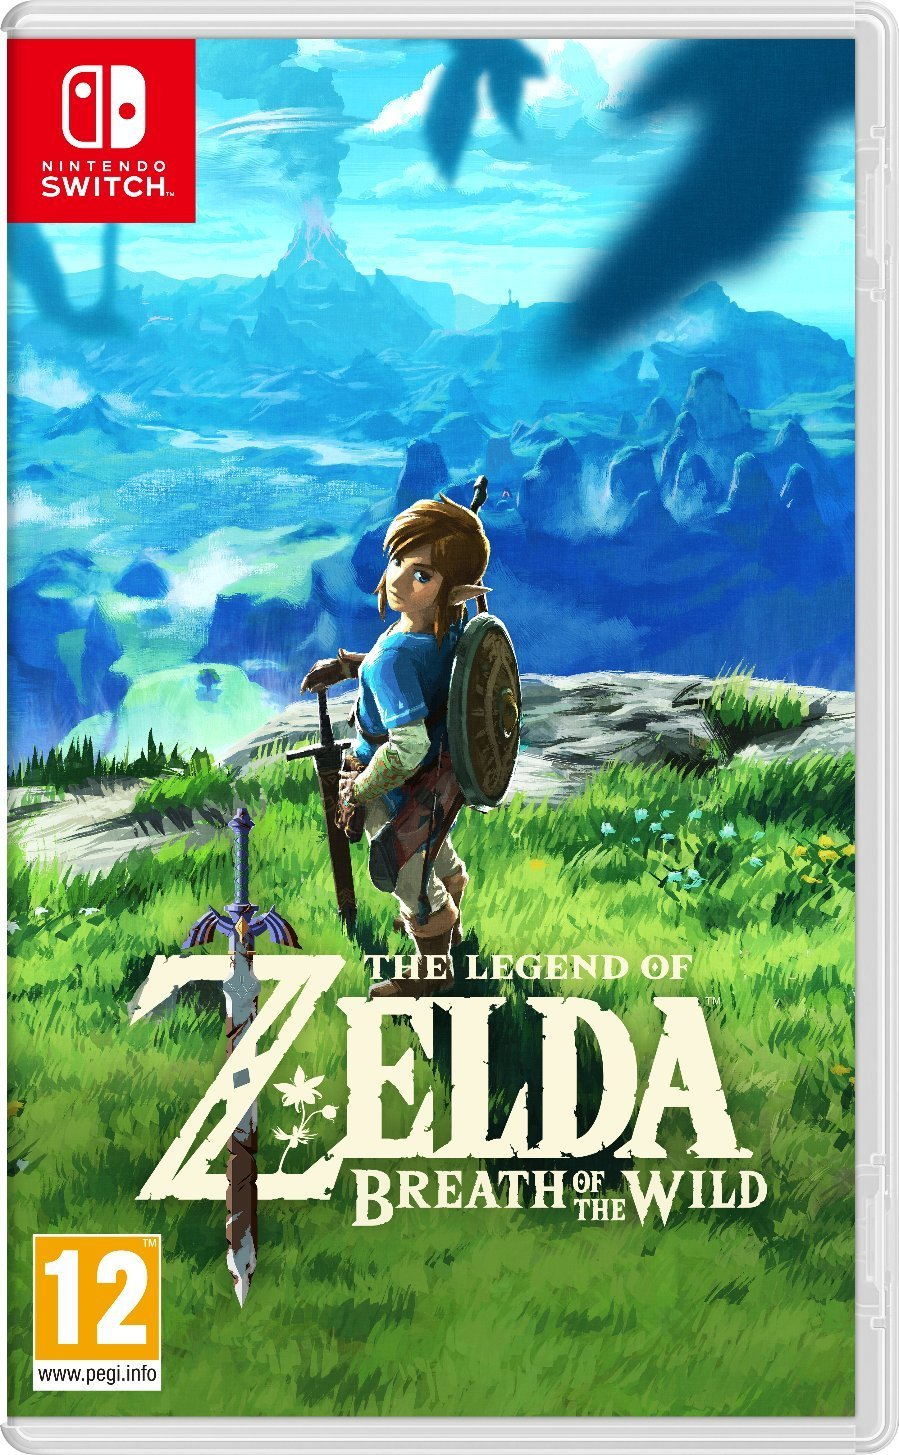 THE LEGEND OF ZELDA. BREATH OF THE WILD (SWITCH) от магазина Games of World